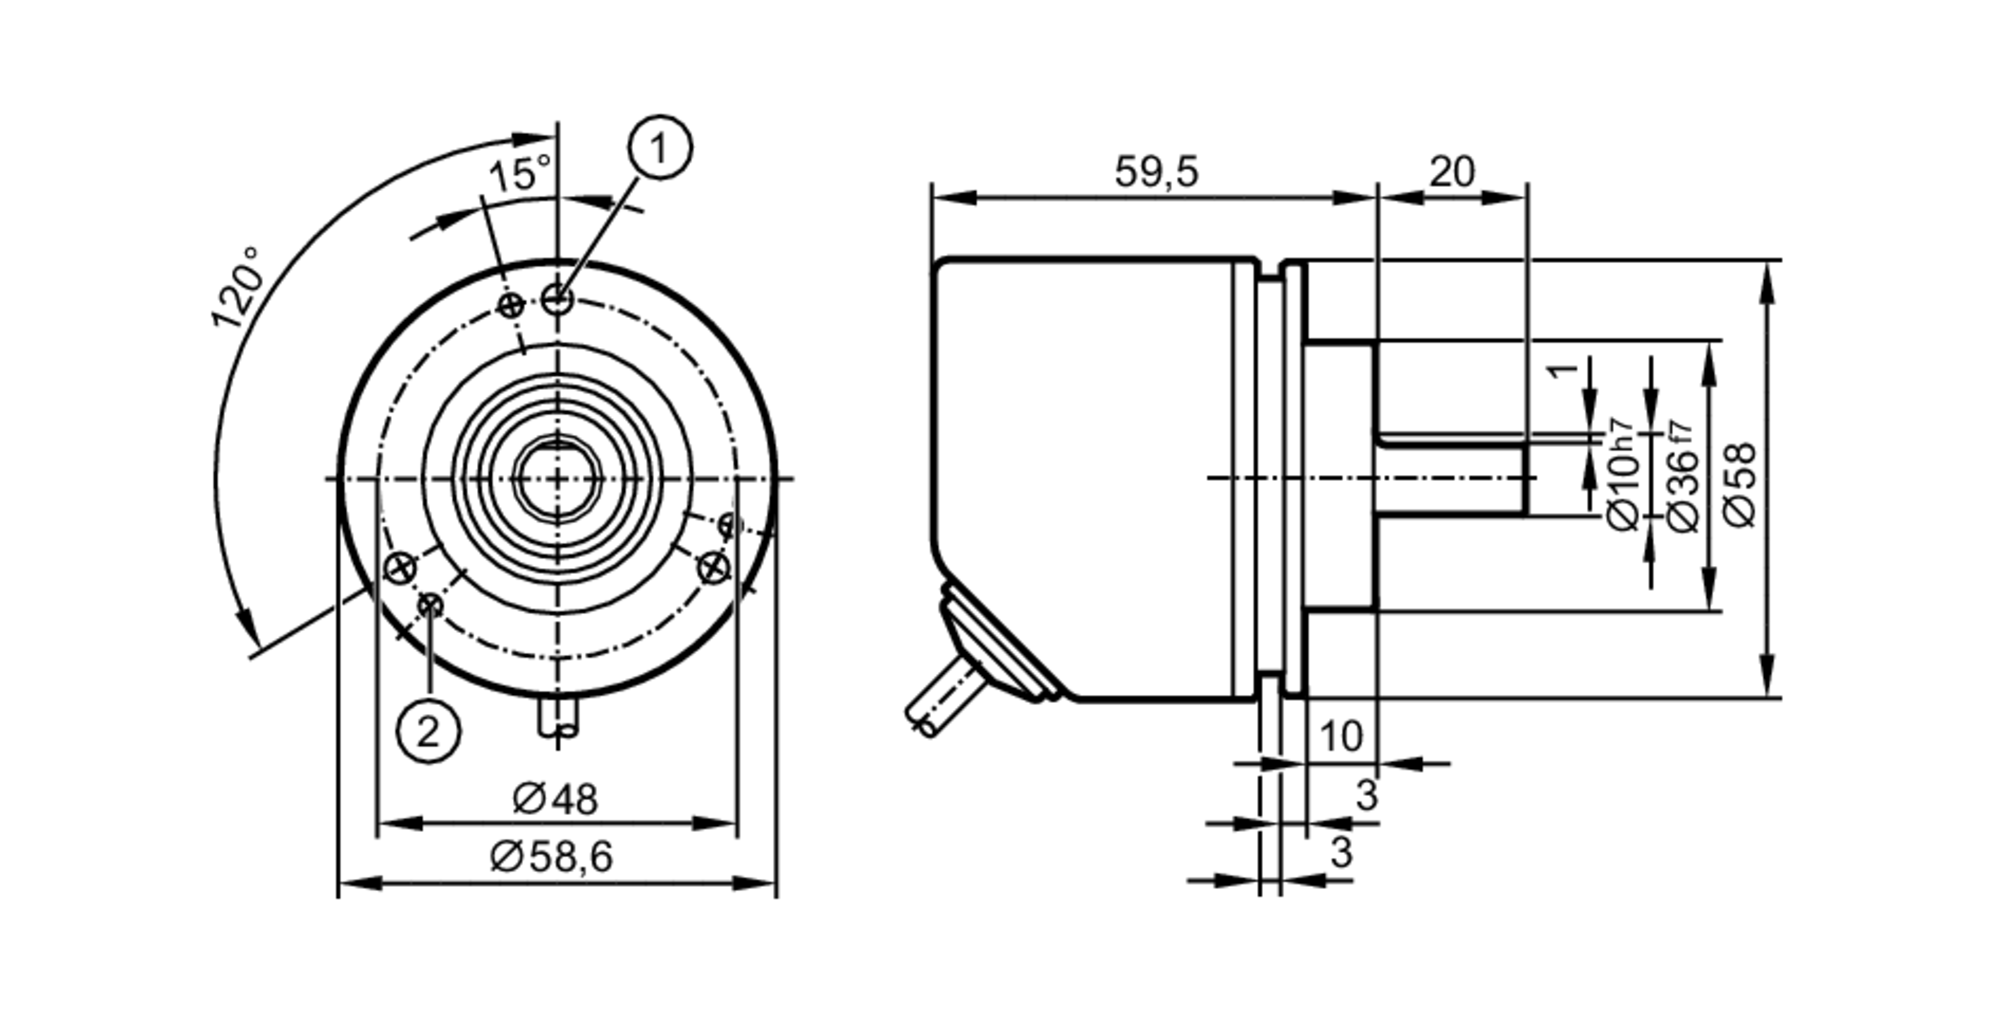 hight resolution of incremental encoder basic line scale drawing